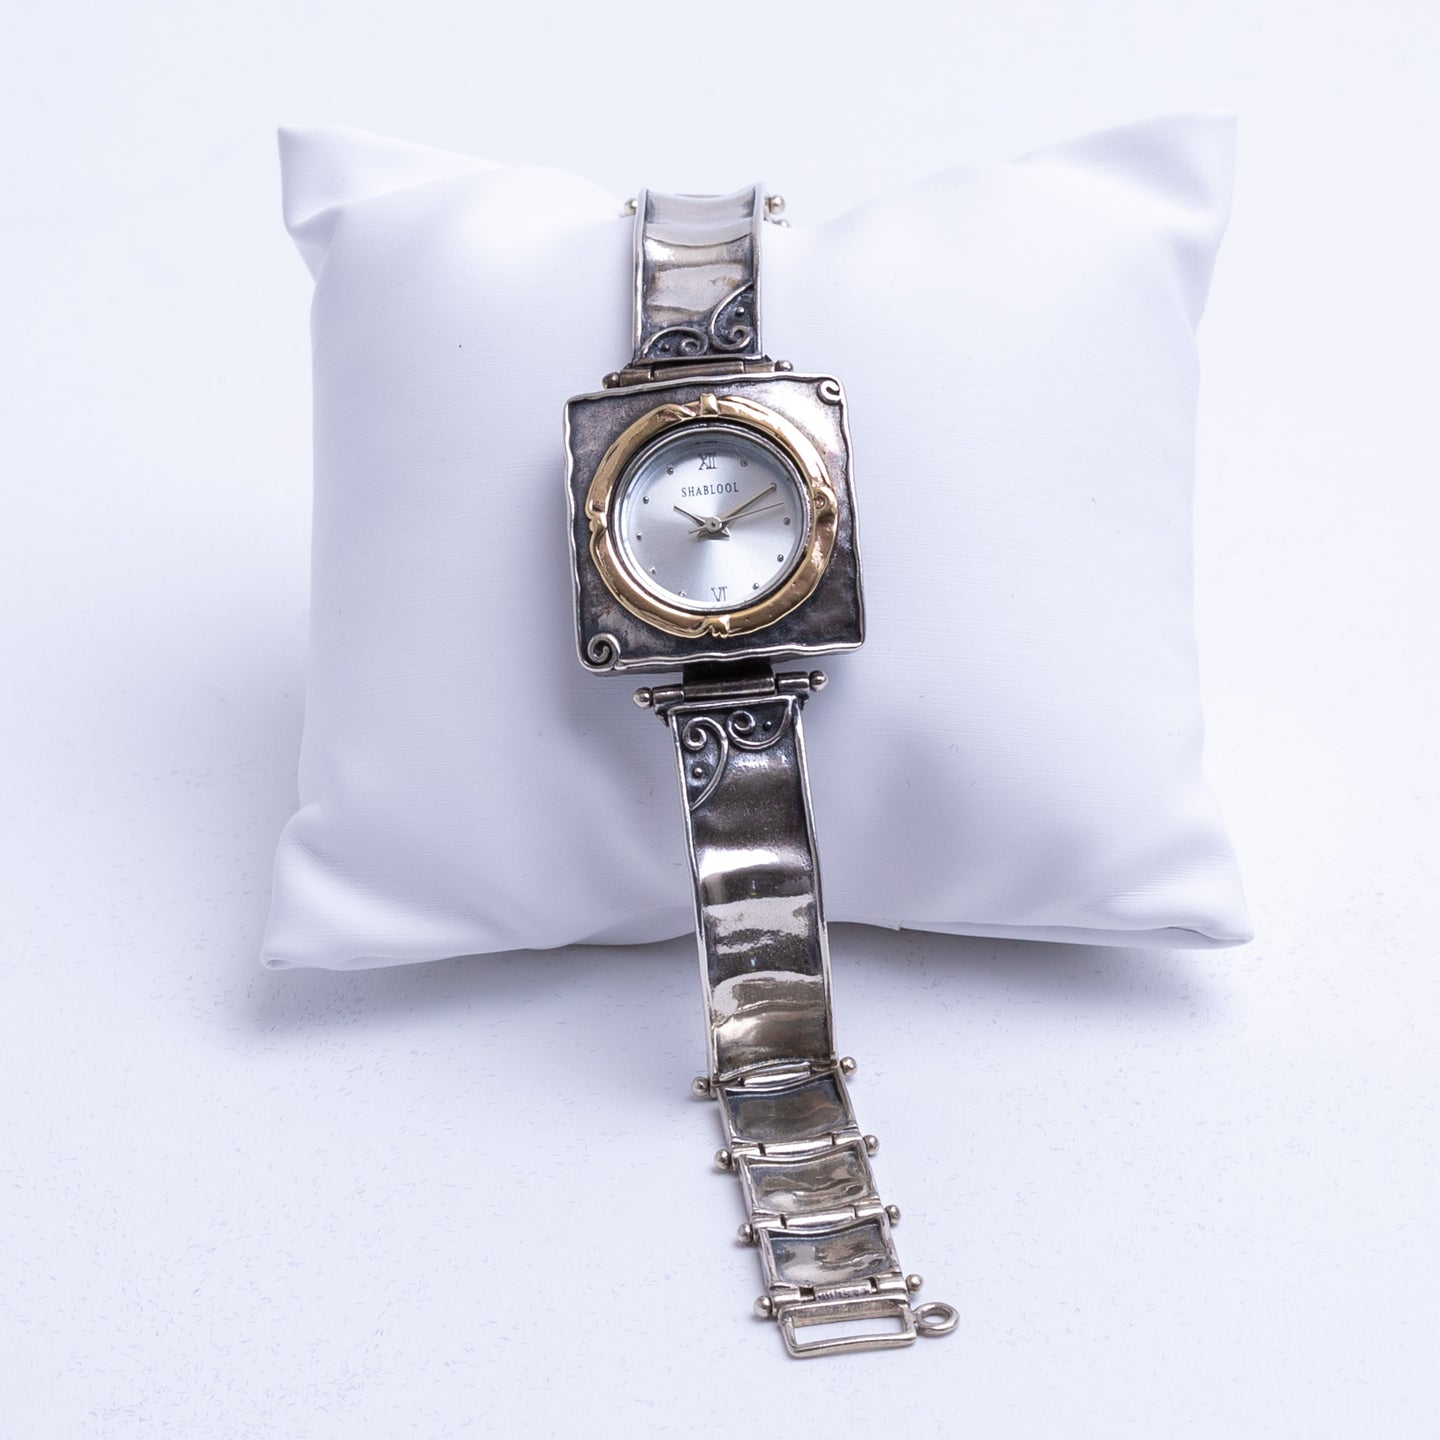 Square vintage-style panel watch